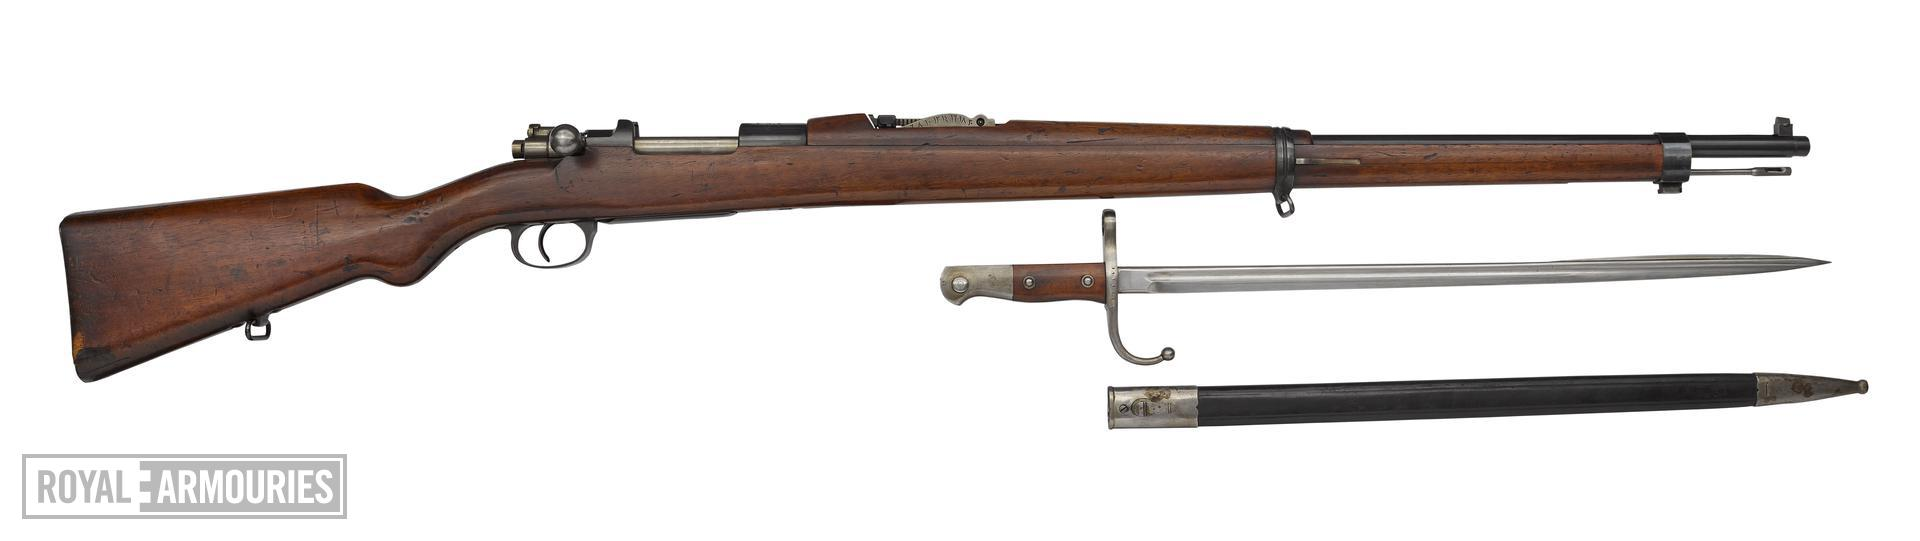 Mauser Model 1903 centrefire bolt action rifle fitted with bayonet (PR.2730), Turkey, about 1903.